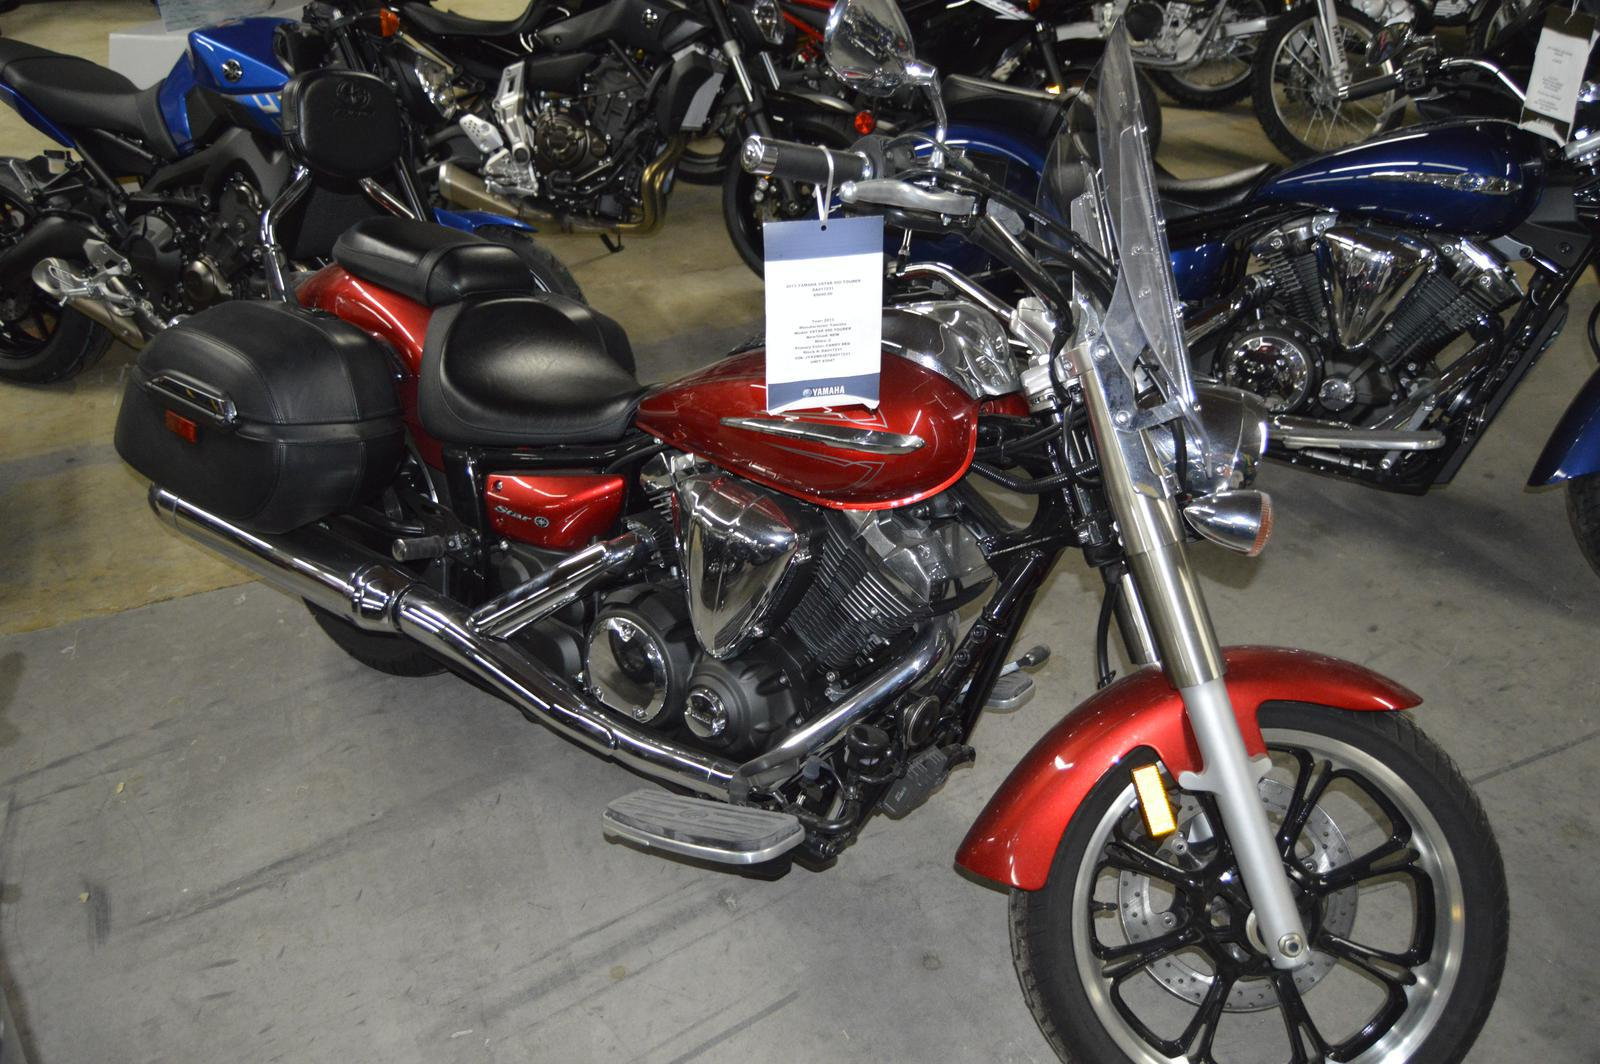 2013 Yamaha V Star 950 Tourer for sale in Stuart, FL | Stuart ...